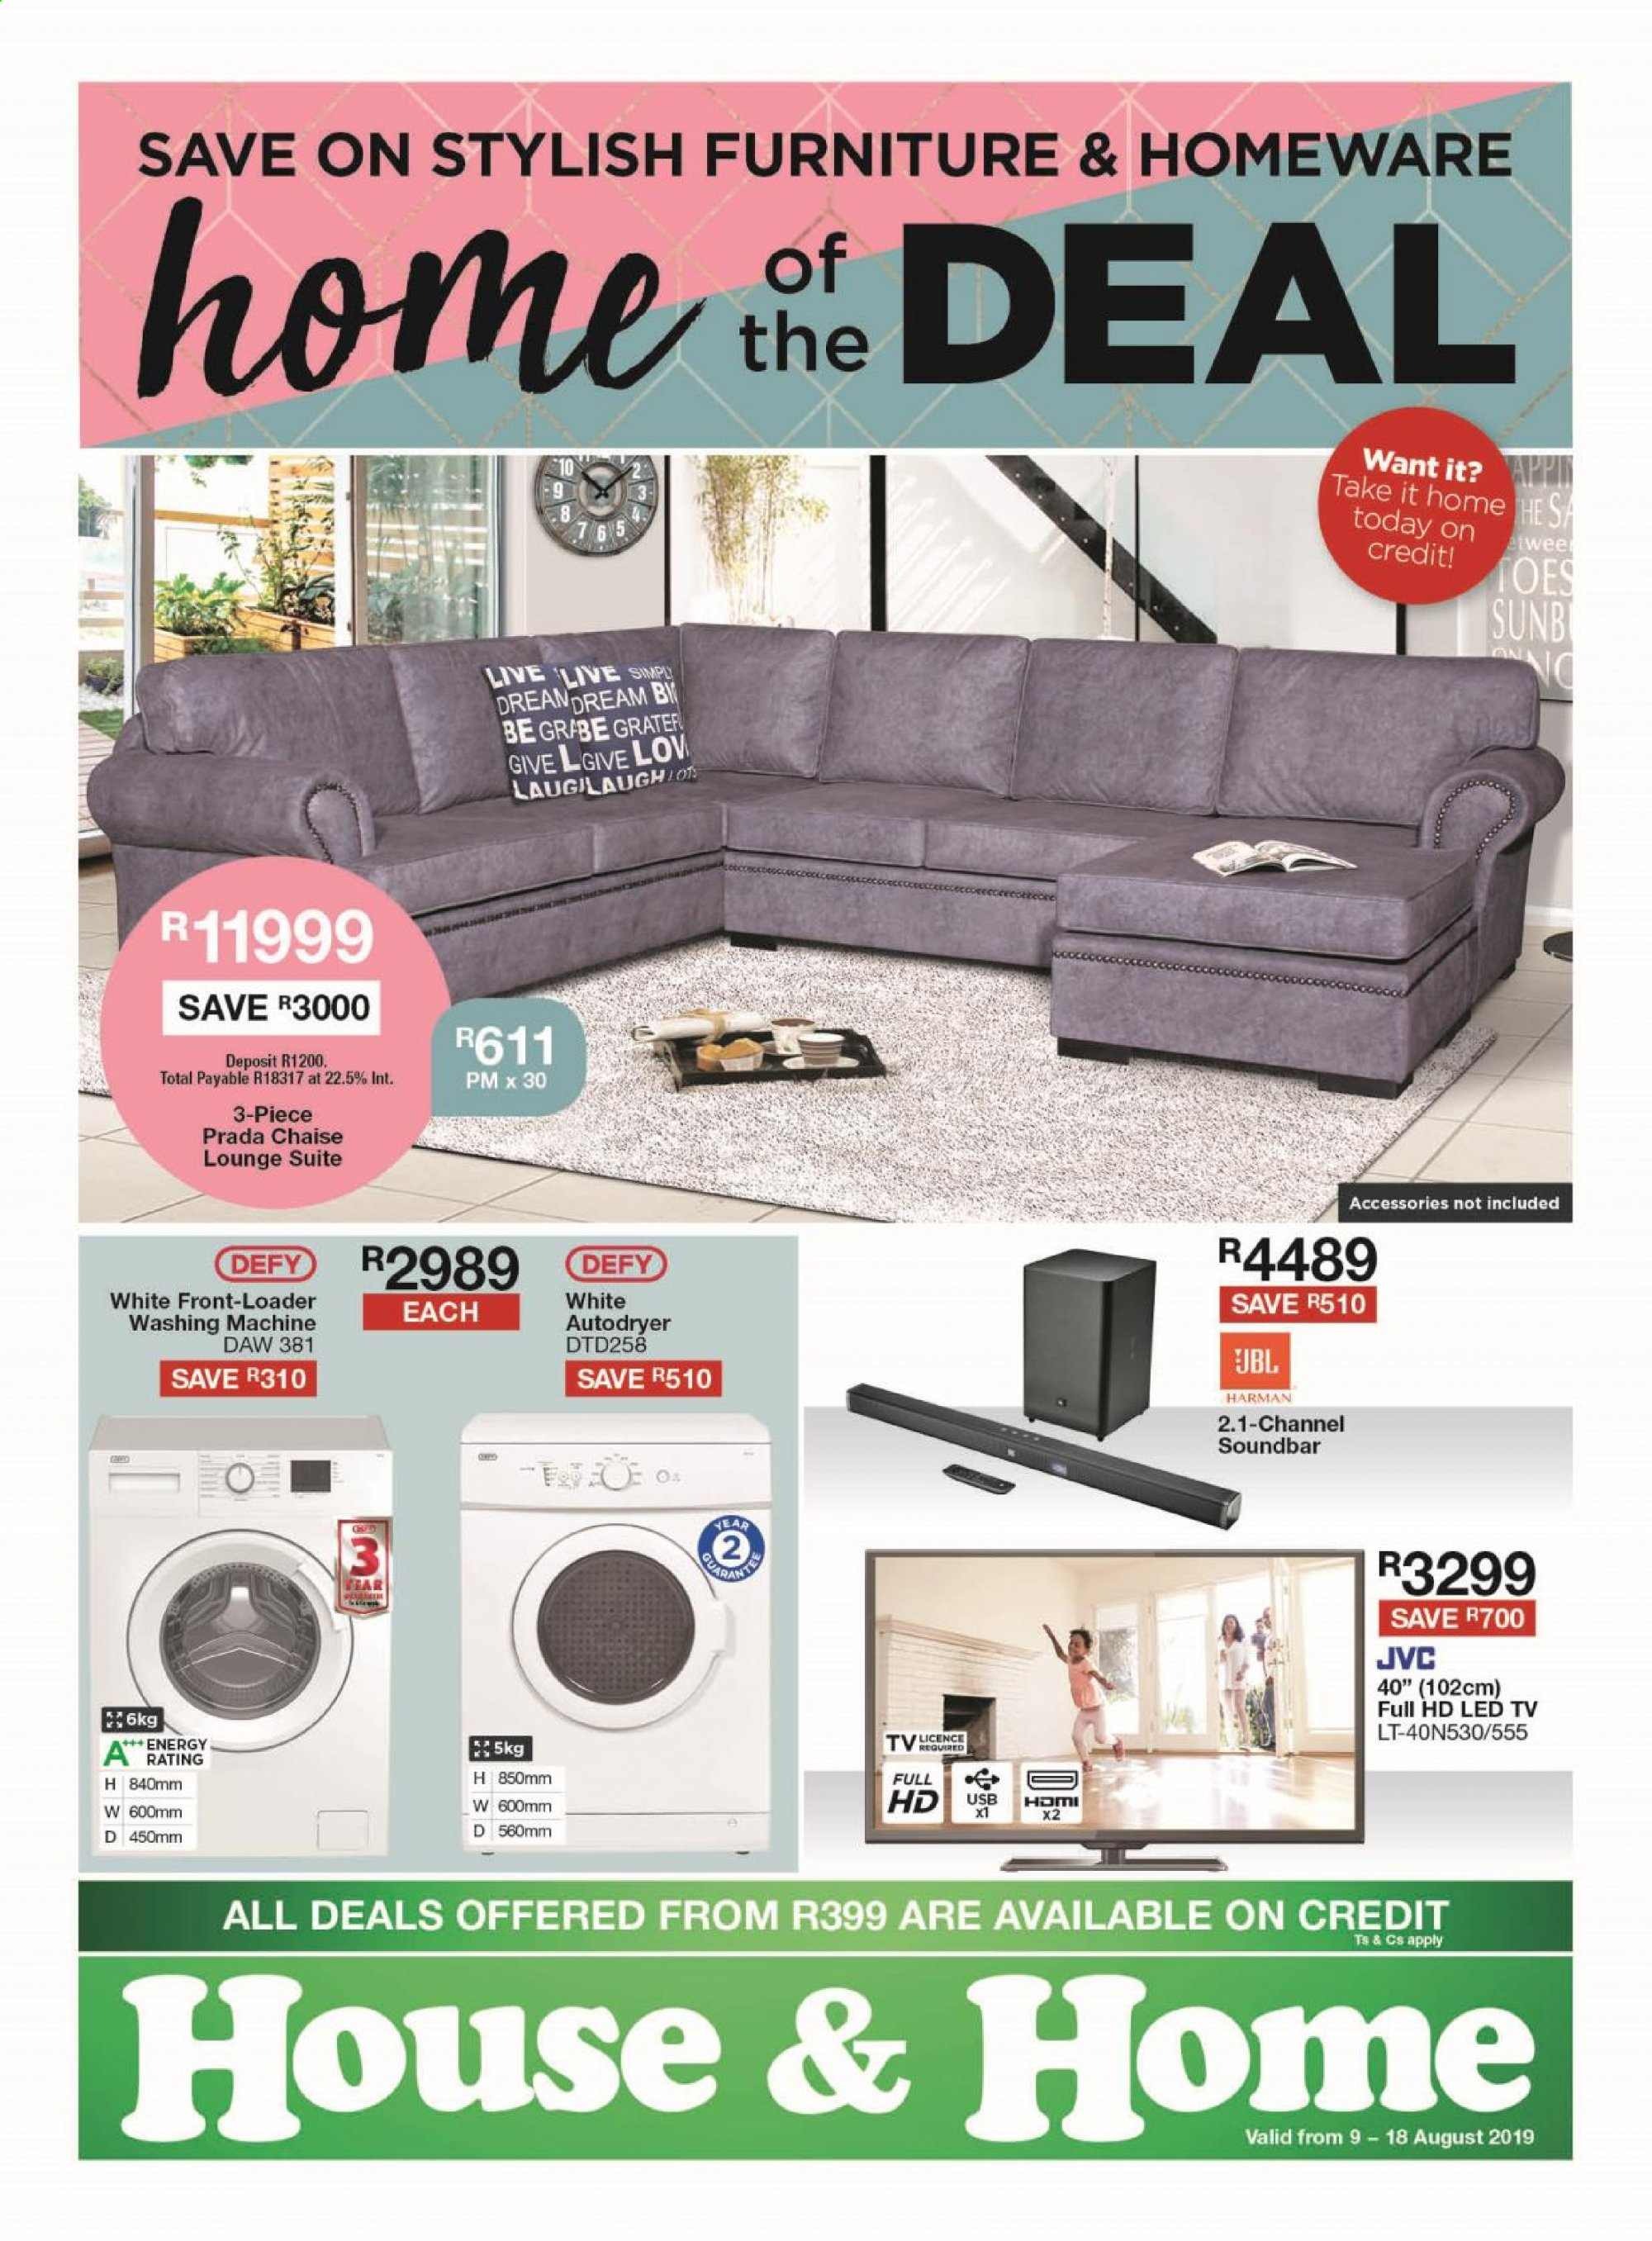 House & Home catalogue  - 08.09.2019 - 08.18.2019. Page 1.